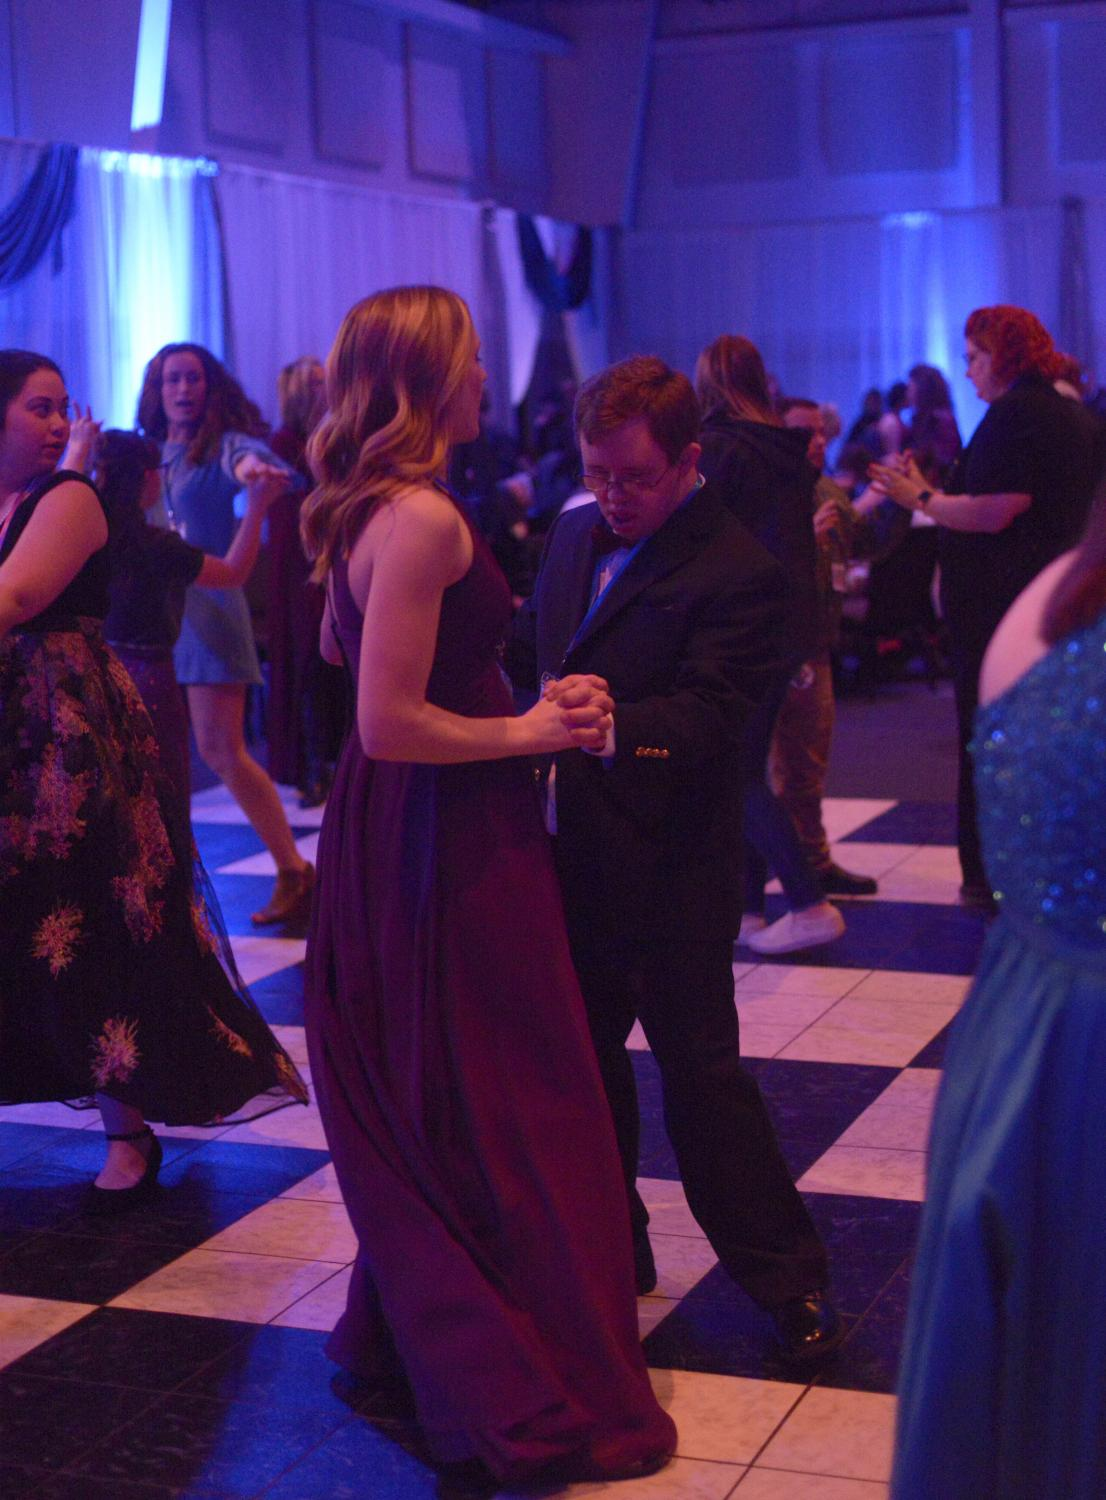 """Emily Chenoweth, left, and Christopher Mussatt dance Friday, Feb. 7, 2020, at the Night to Shine dance at The Crossing in Columbia. """"I got the moves,"""" Mussatt said."""